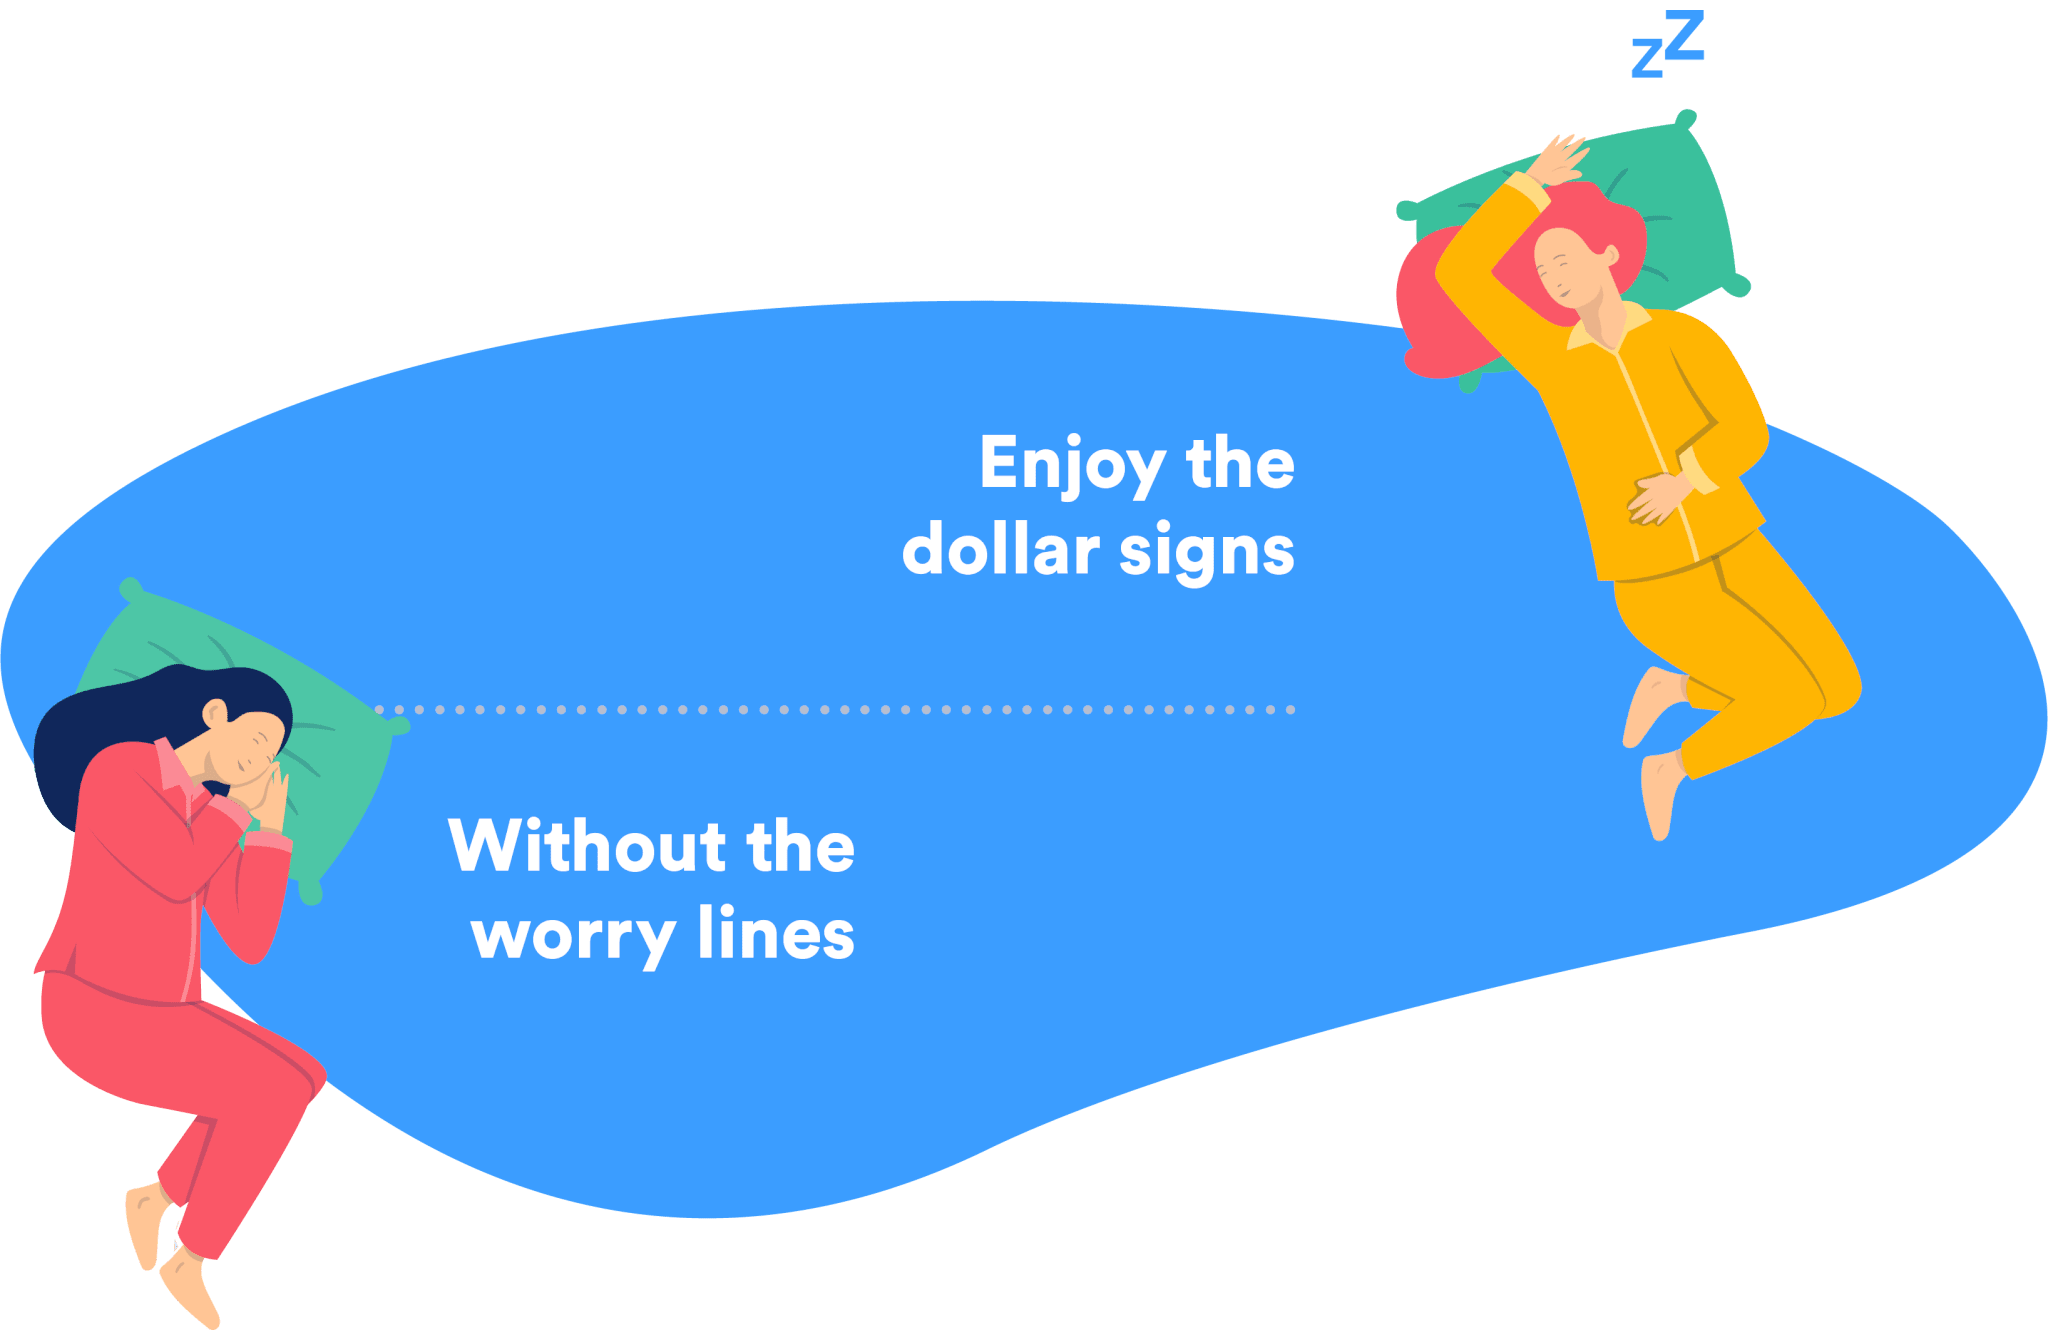 Enjoy the dollar signs without the worry lines - Guesty